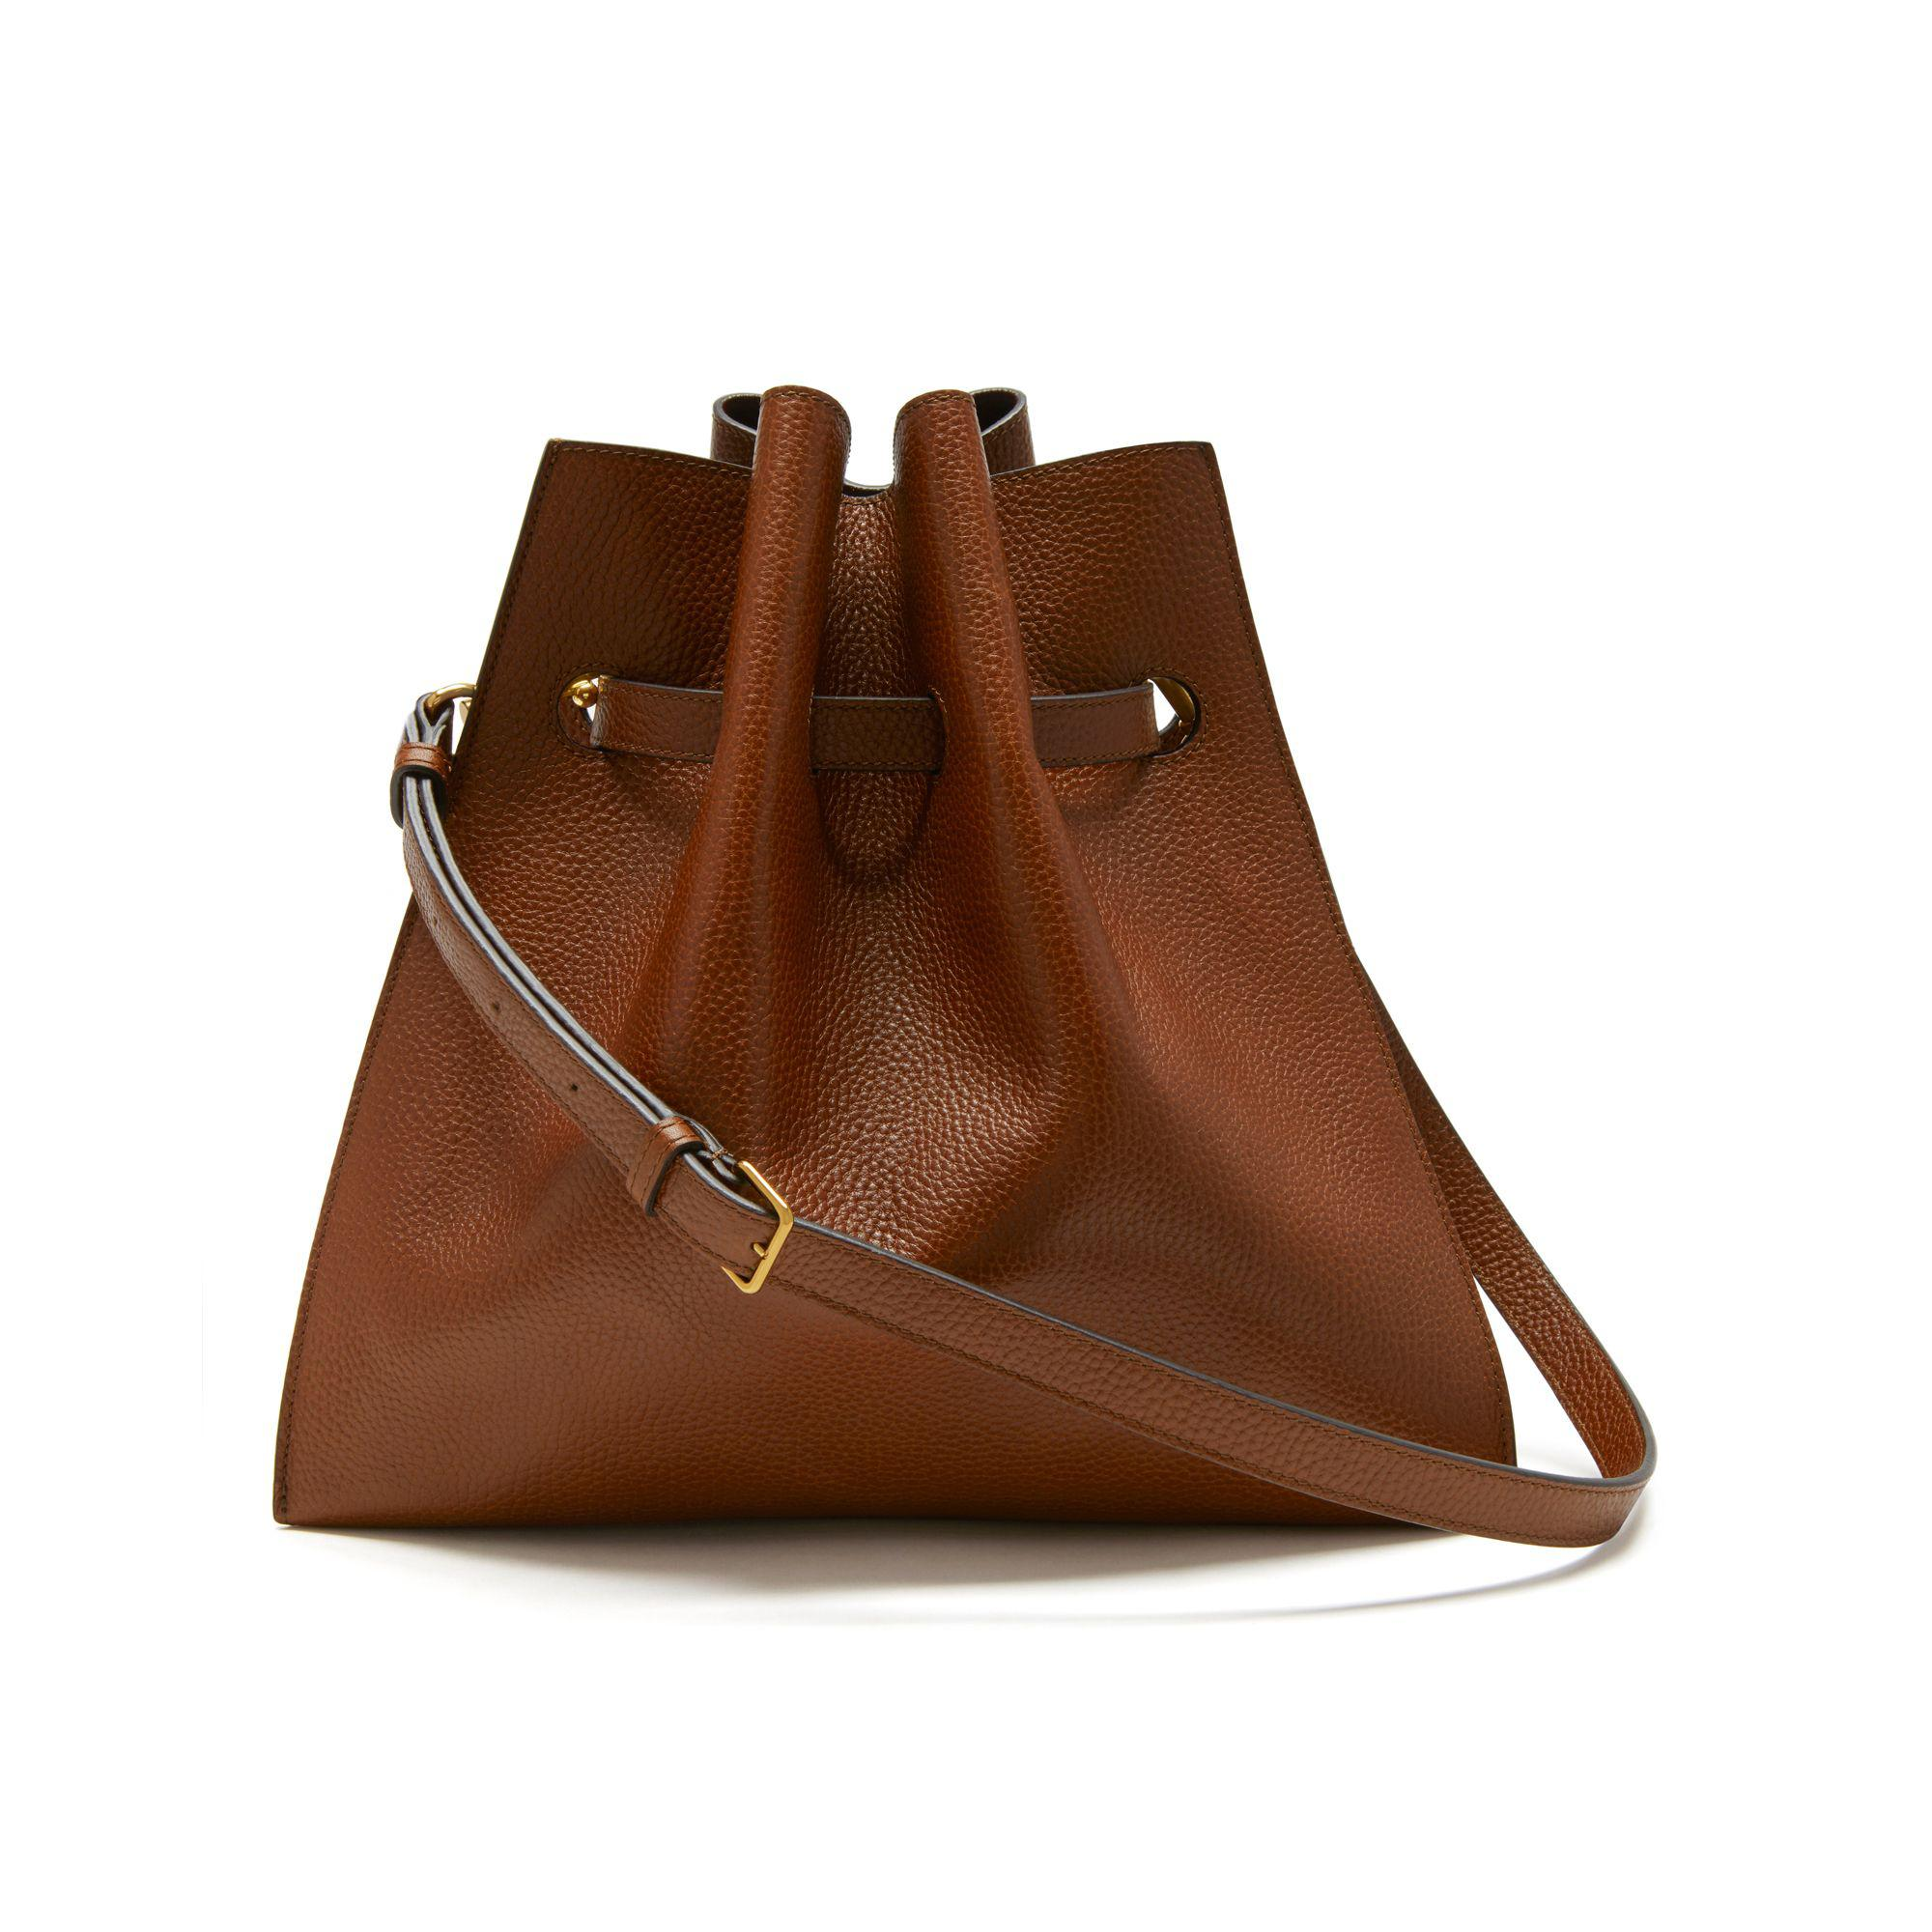 48b5413878 Mulberry Small Tyndale in Brown - Lyst